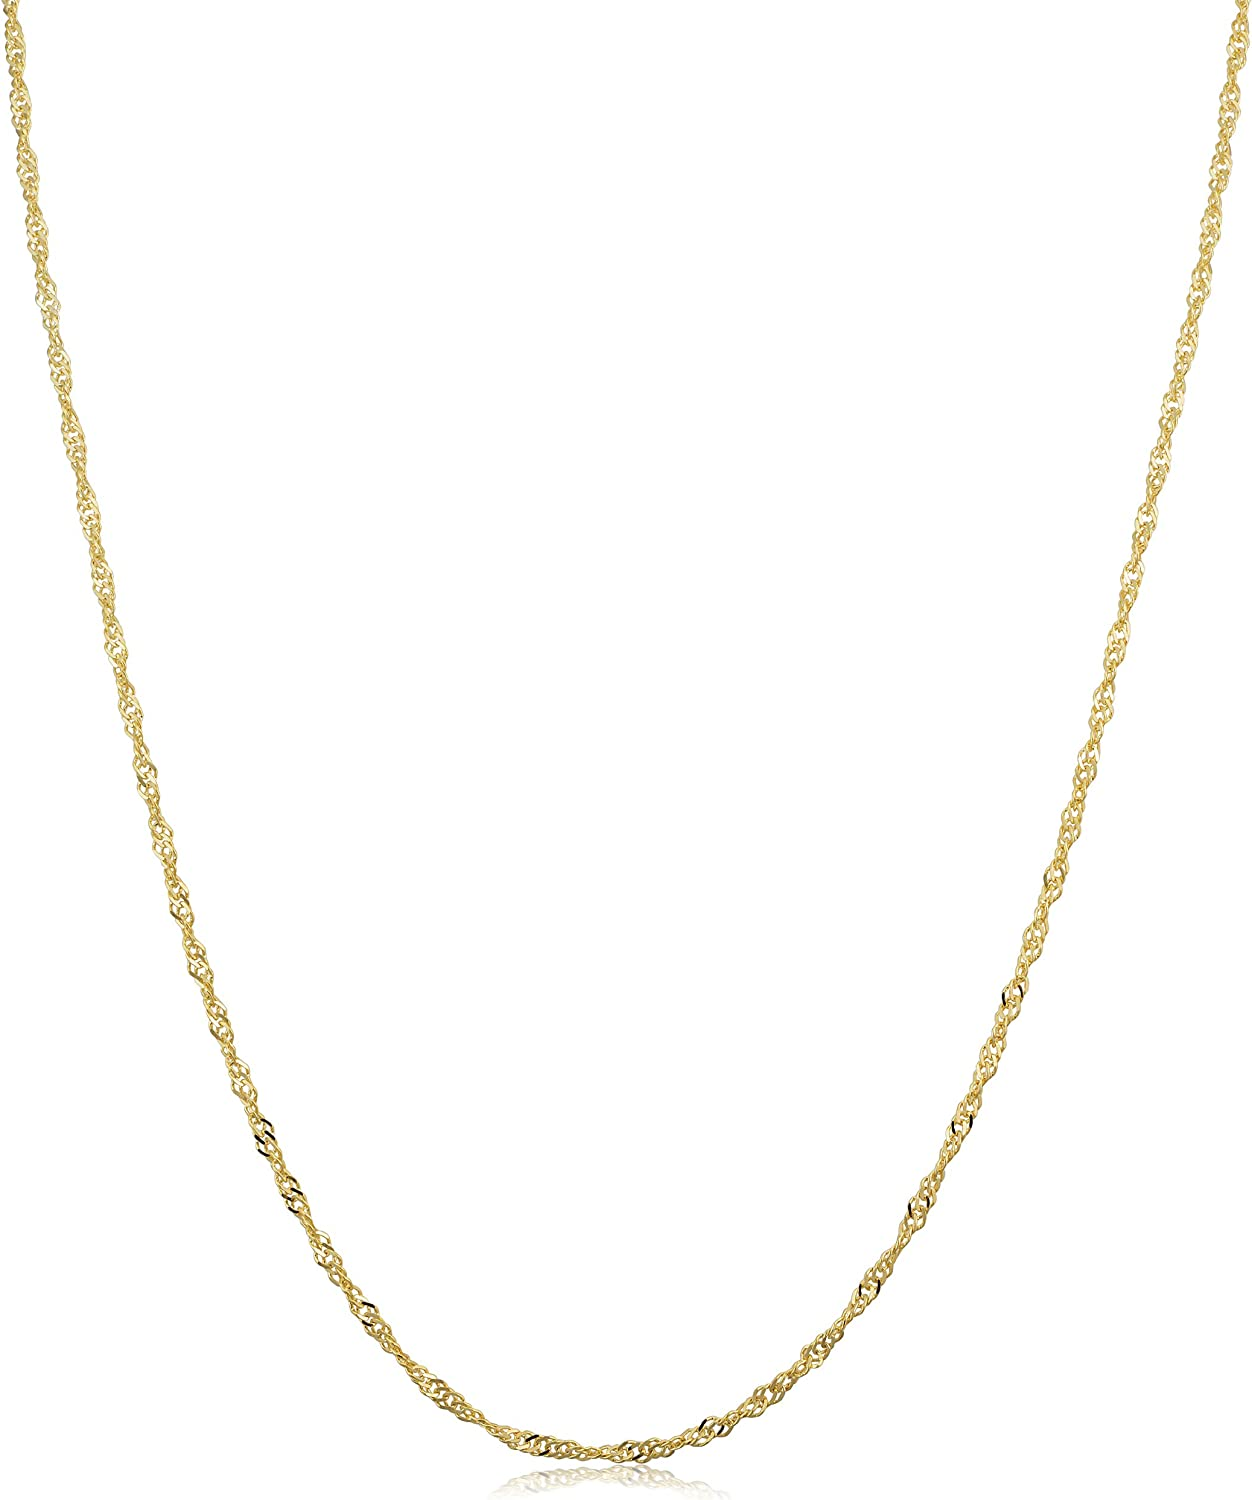 Kooljewelry 14k Yellow Gold Singapore Chain Necklace (0.7 mm, 1 mm, 1.4 mm, 1.7 mm)